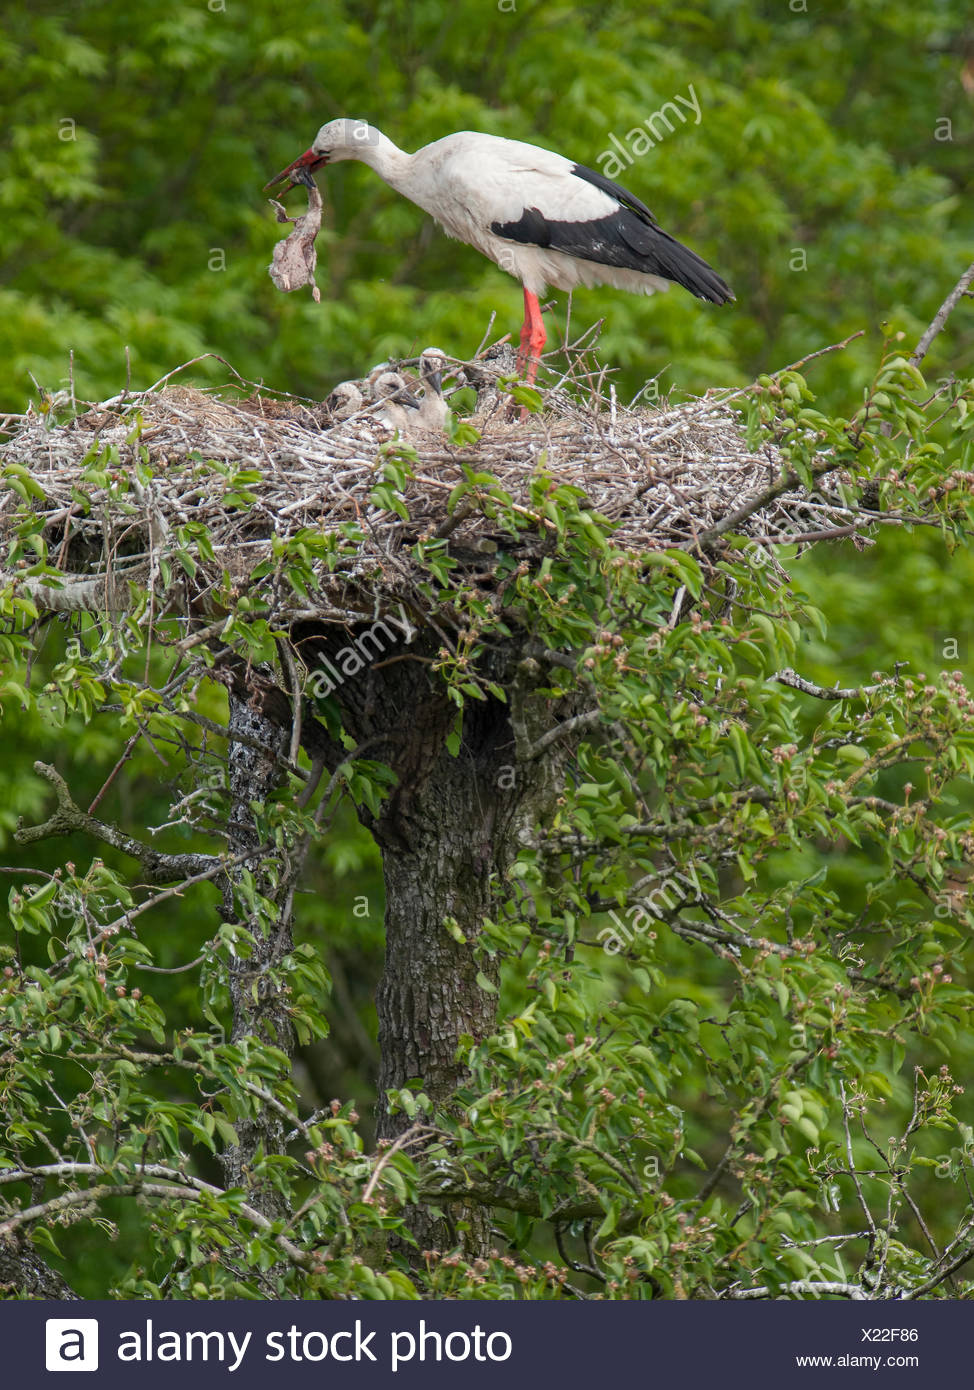 White Stork with two juveniles on nest. Parents tries eating its own dead chick. Europe Stock Photo